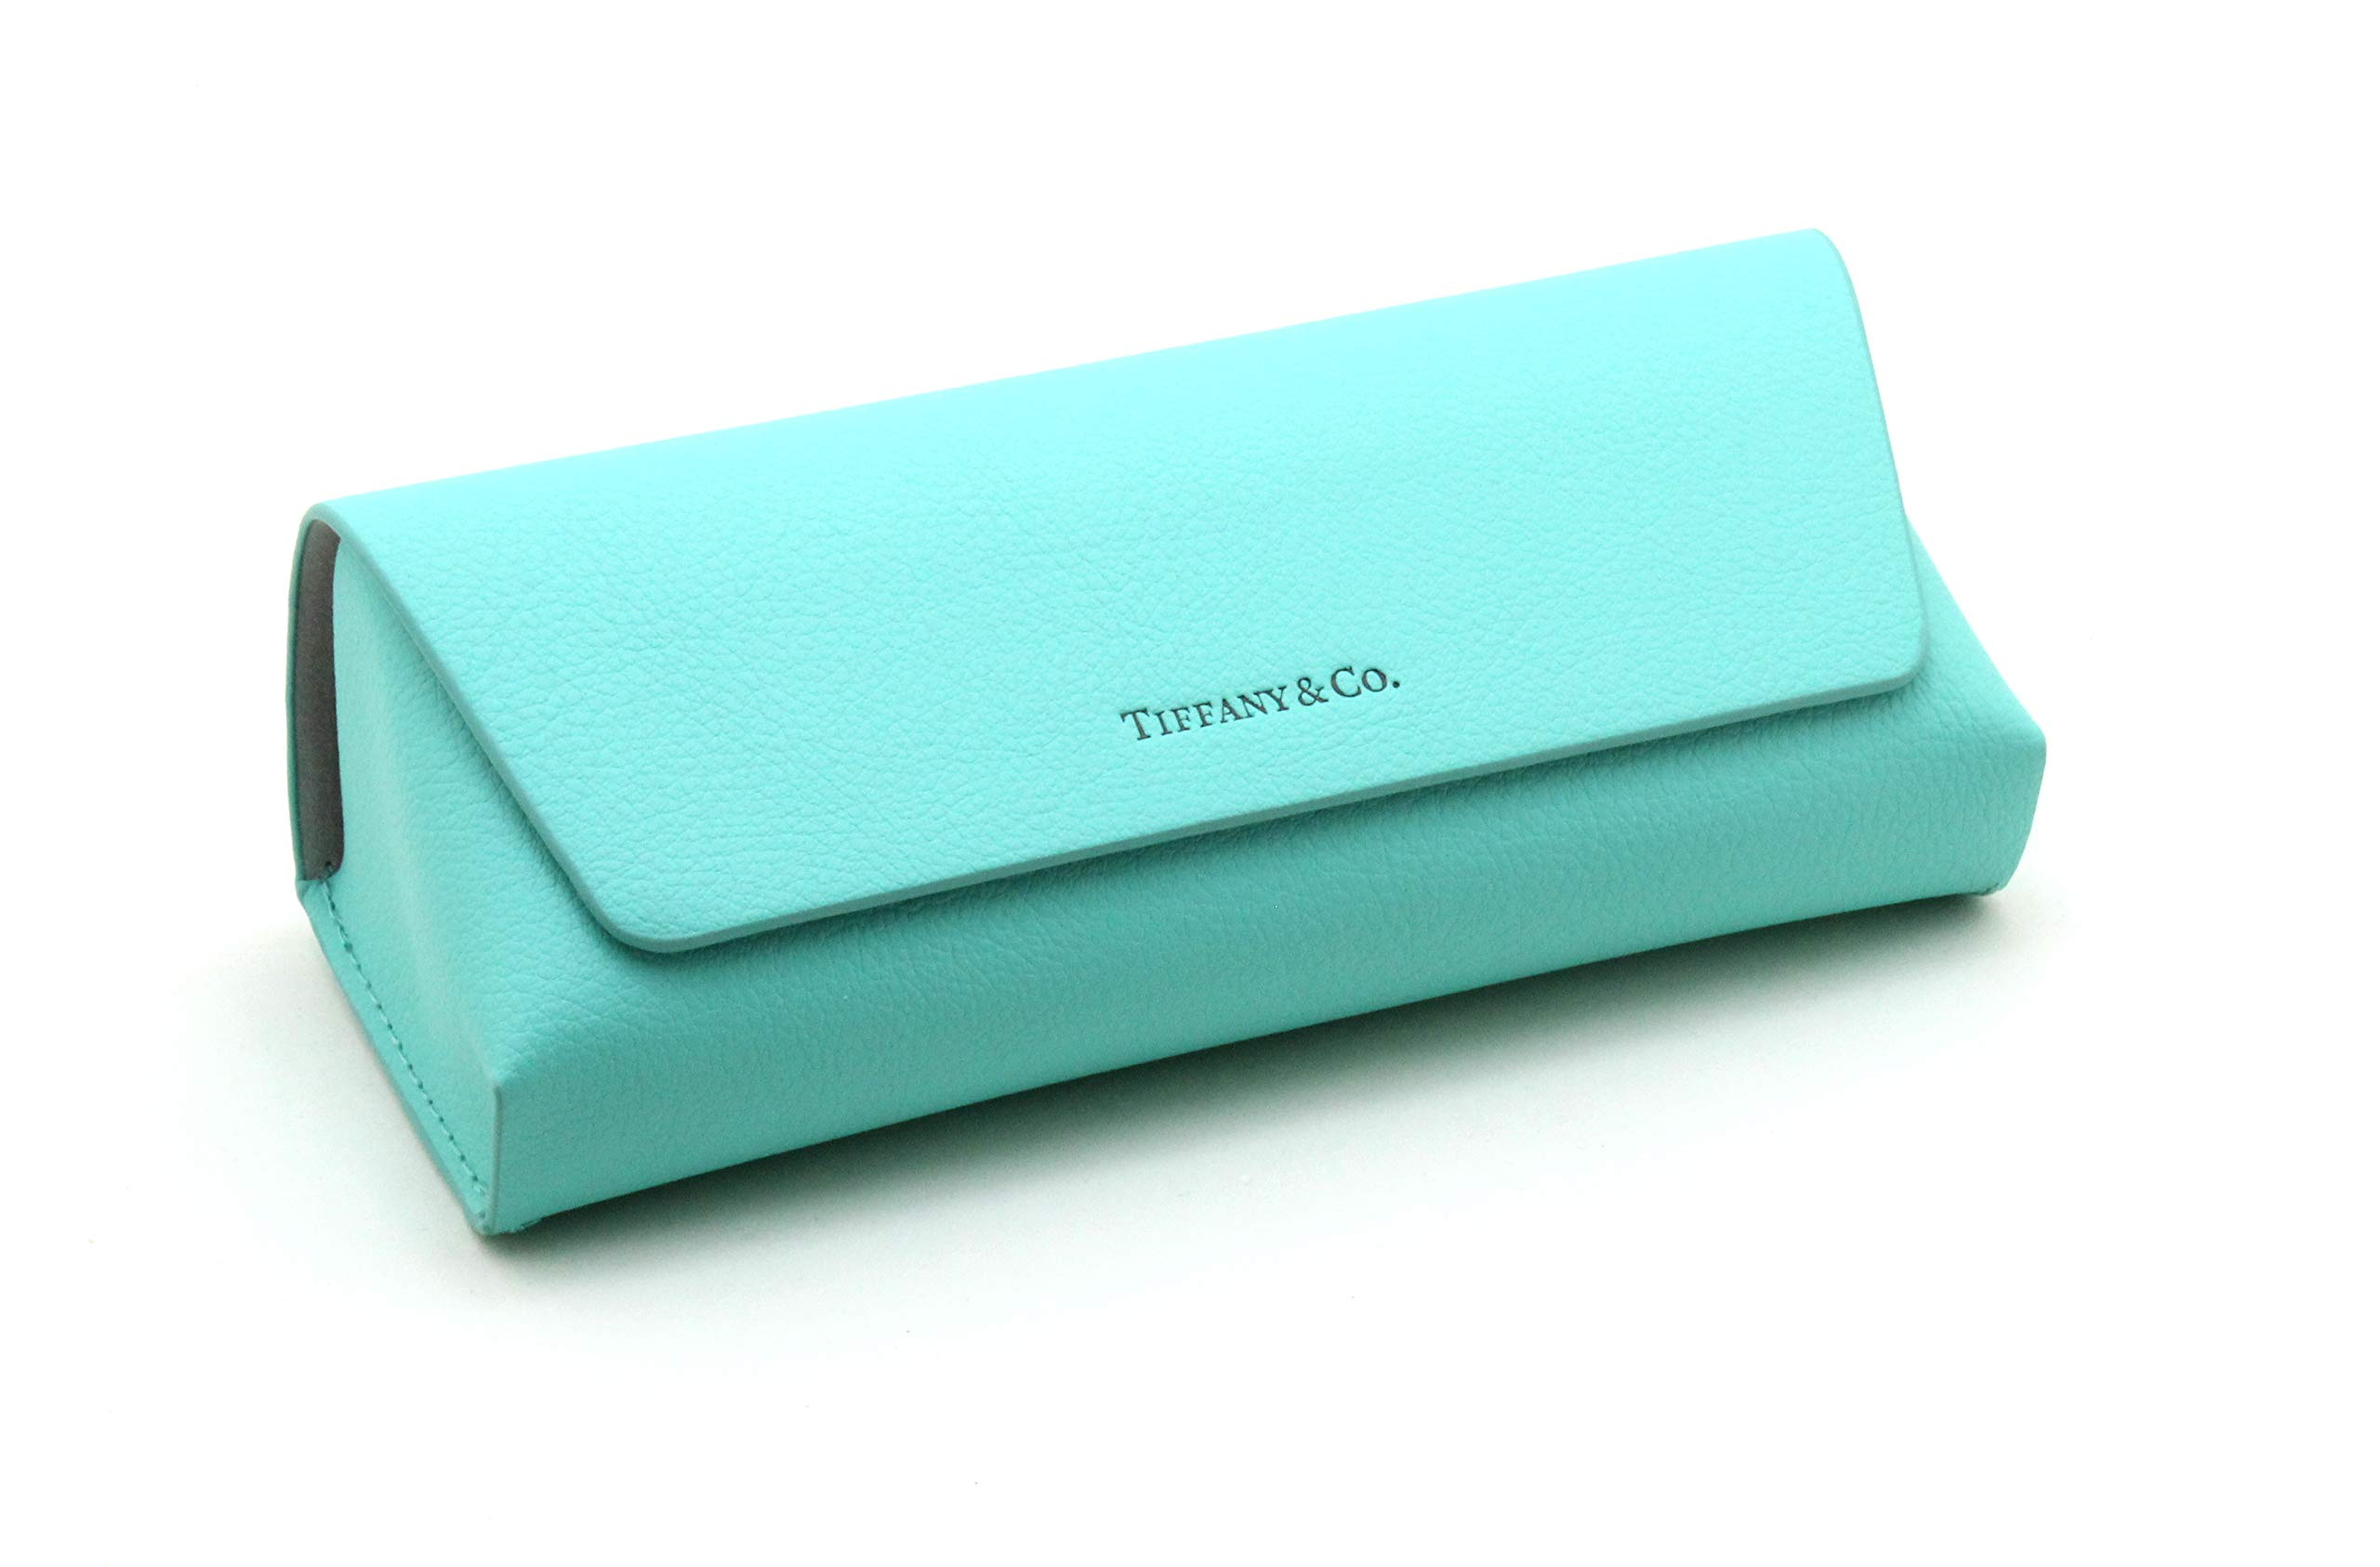 Tiffany & Co. Case for Sunglasses and Eyeglasses w/Original Retail Packaging New 2019 Collection, Large by Tiffany & Co.